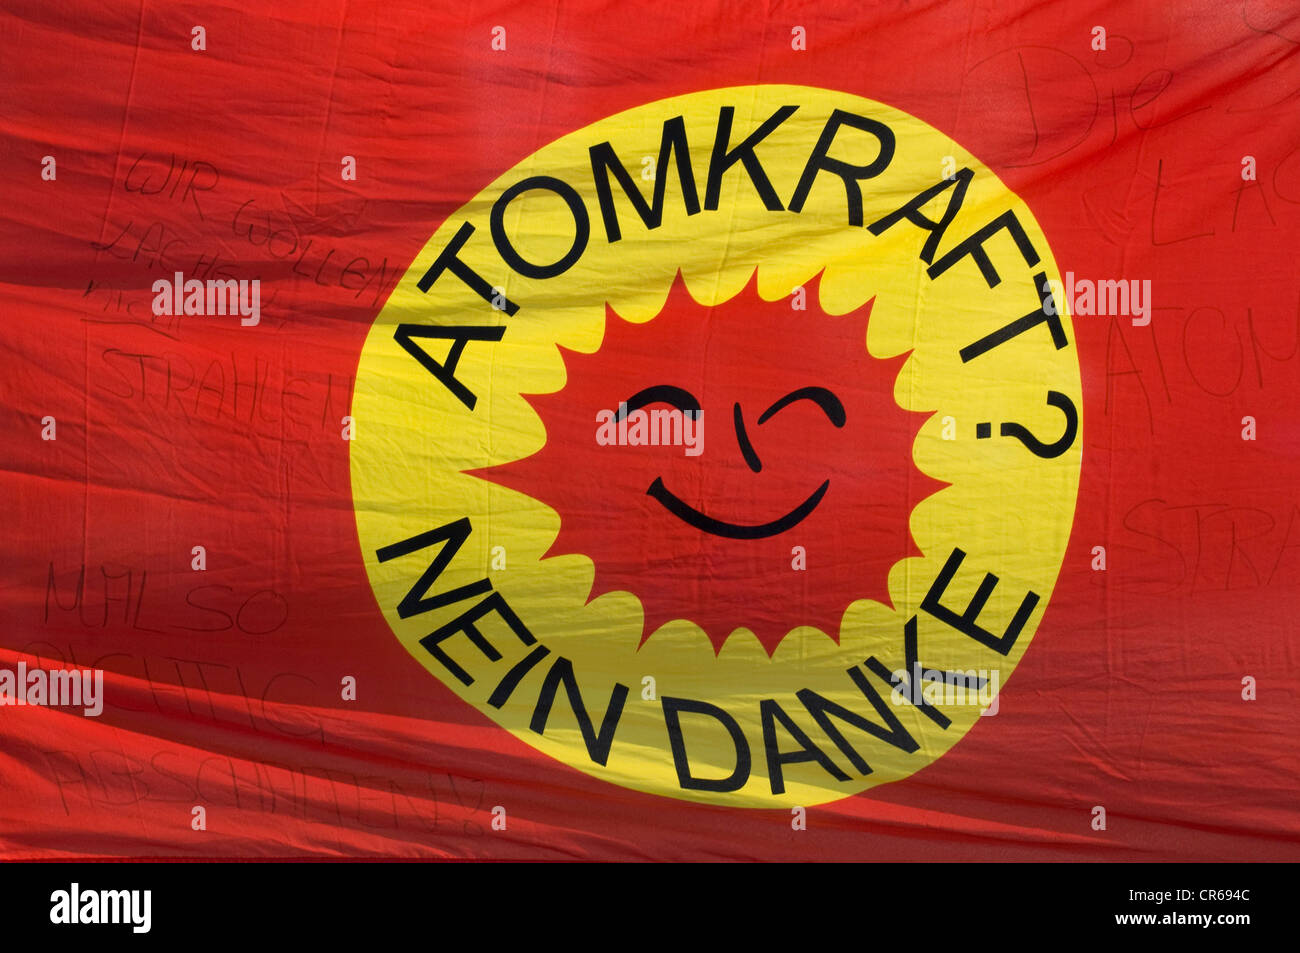 """Banner """"Atomkraft? Nein danke"""" German for """"nuclear power? No thanks"""", smiling sun, logo of the anti-nuclear movement Stock Photo"""